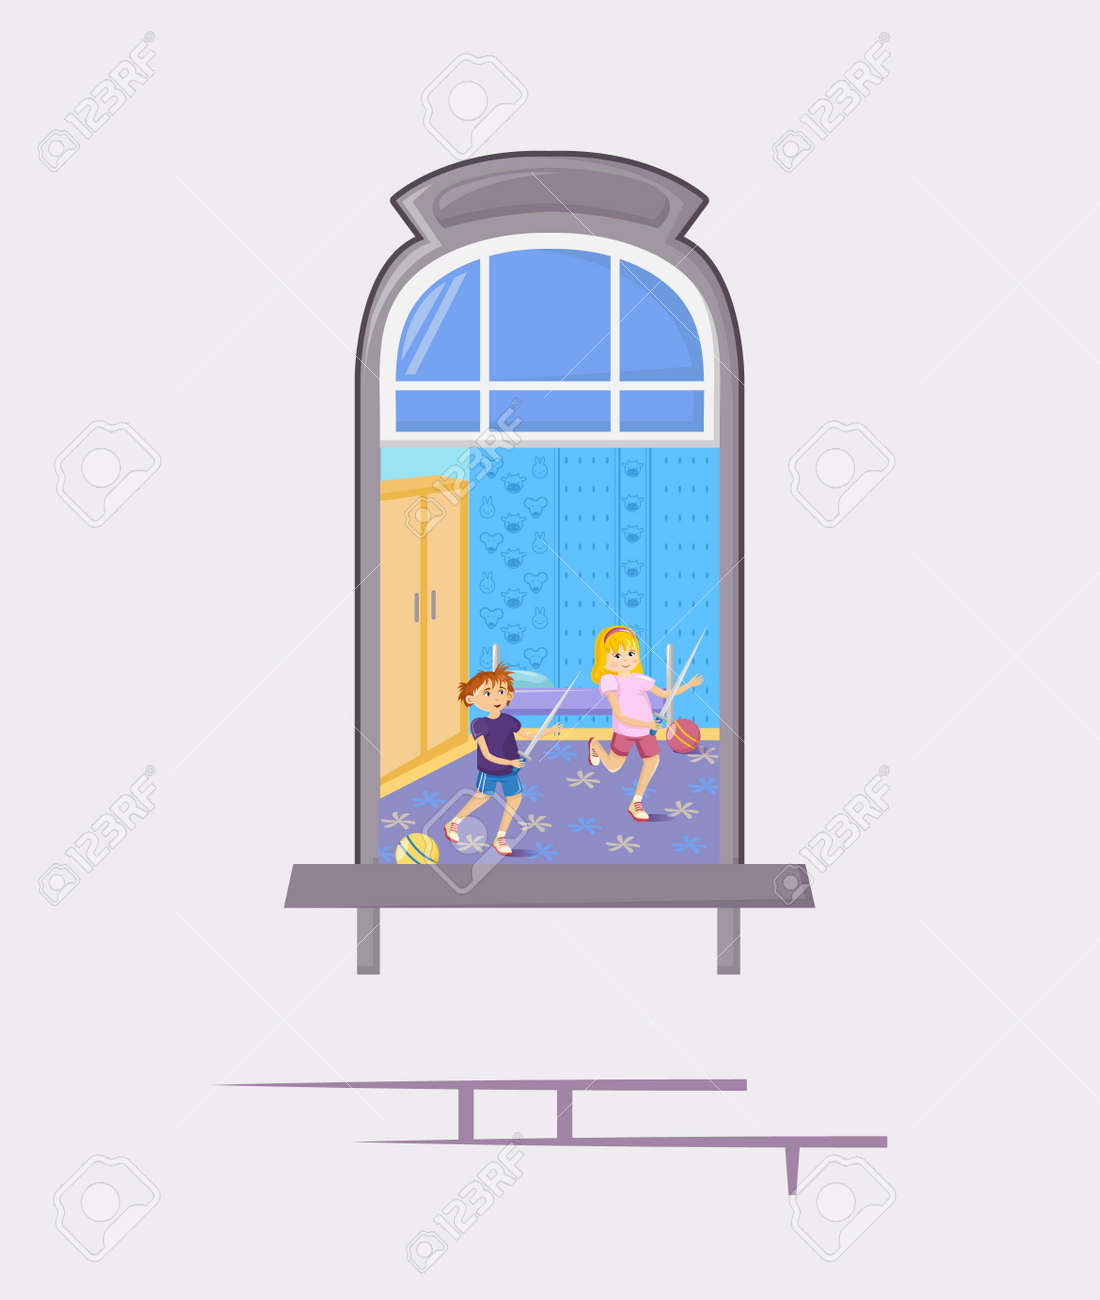 Neighbors in windows of old house. House building facade with open windows and with people. - 146426194